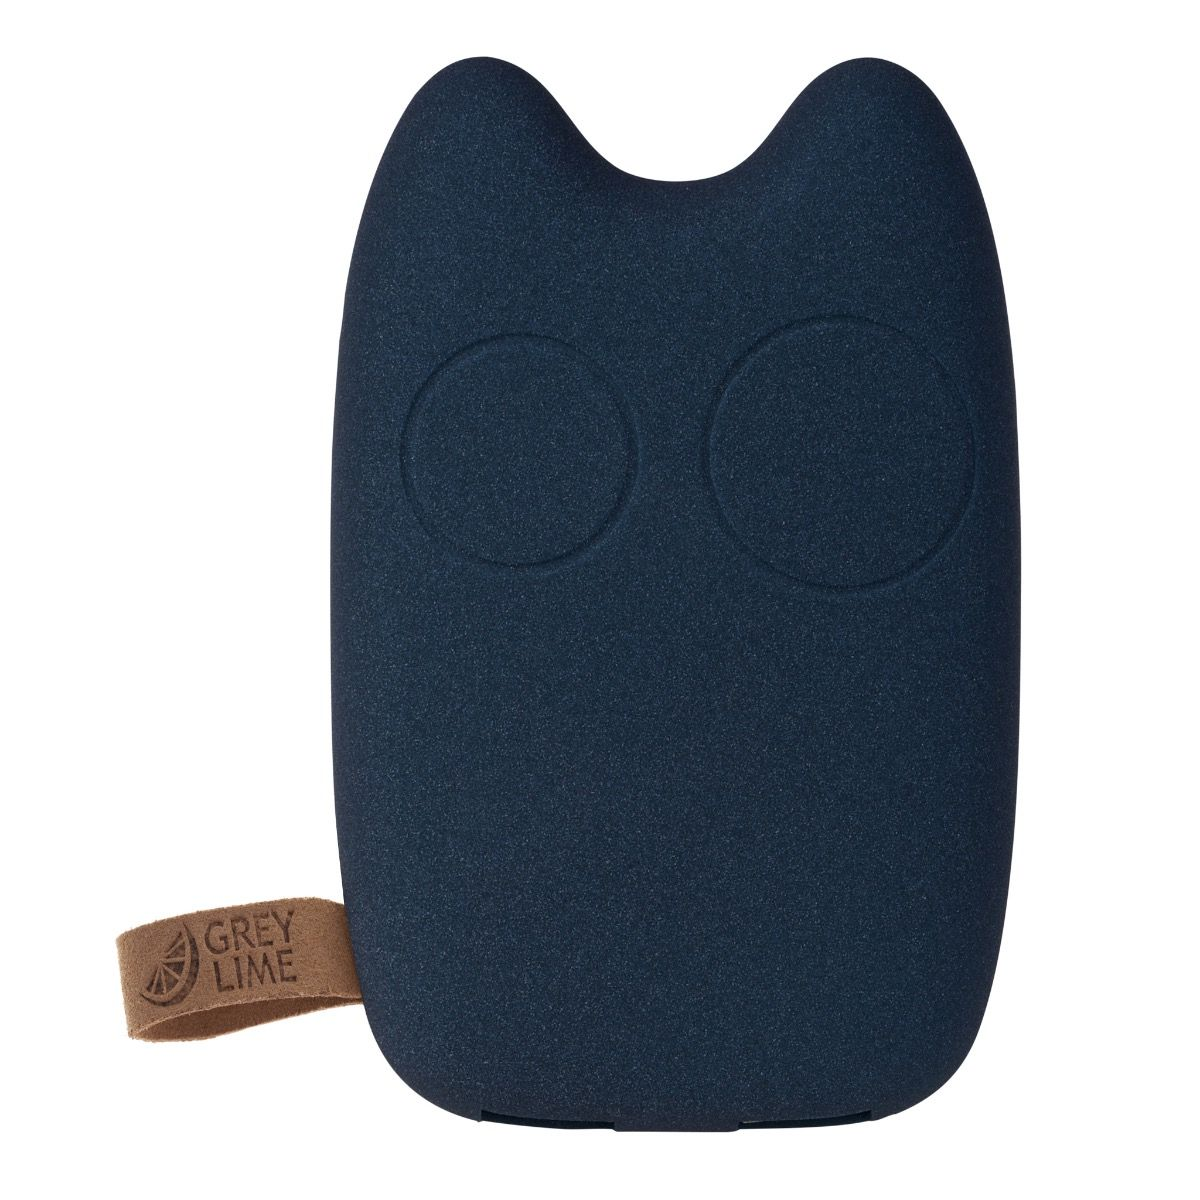 GreyLime Power Owl - 5200 mAh